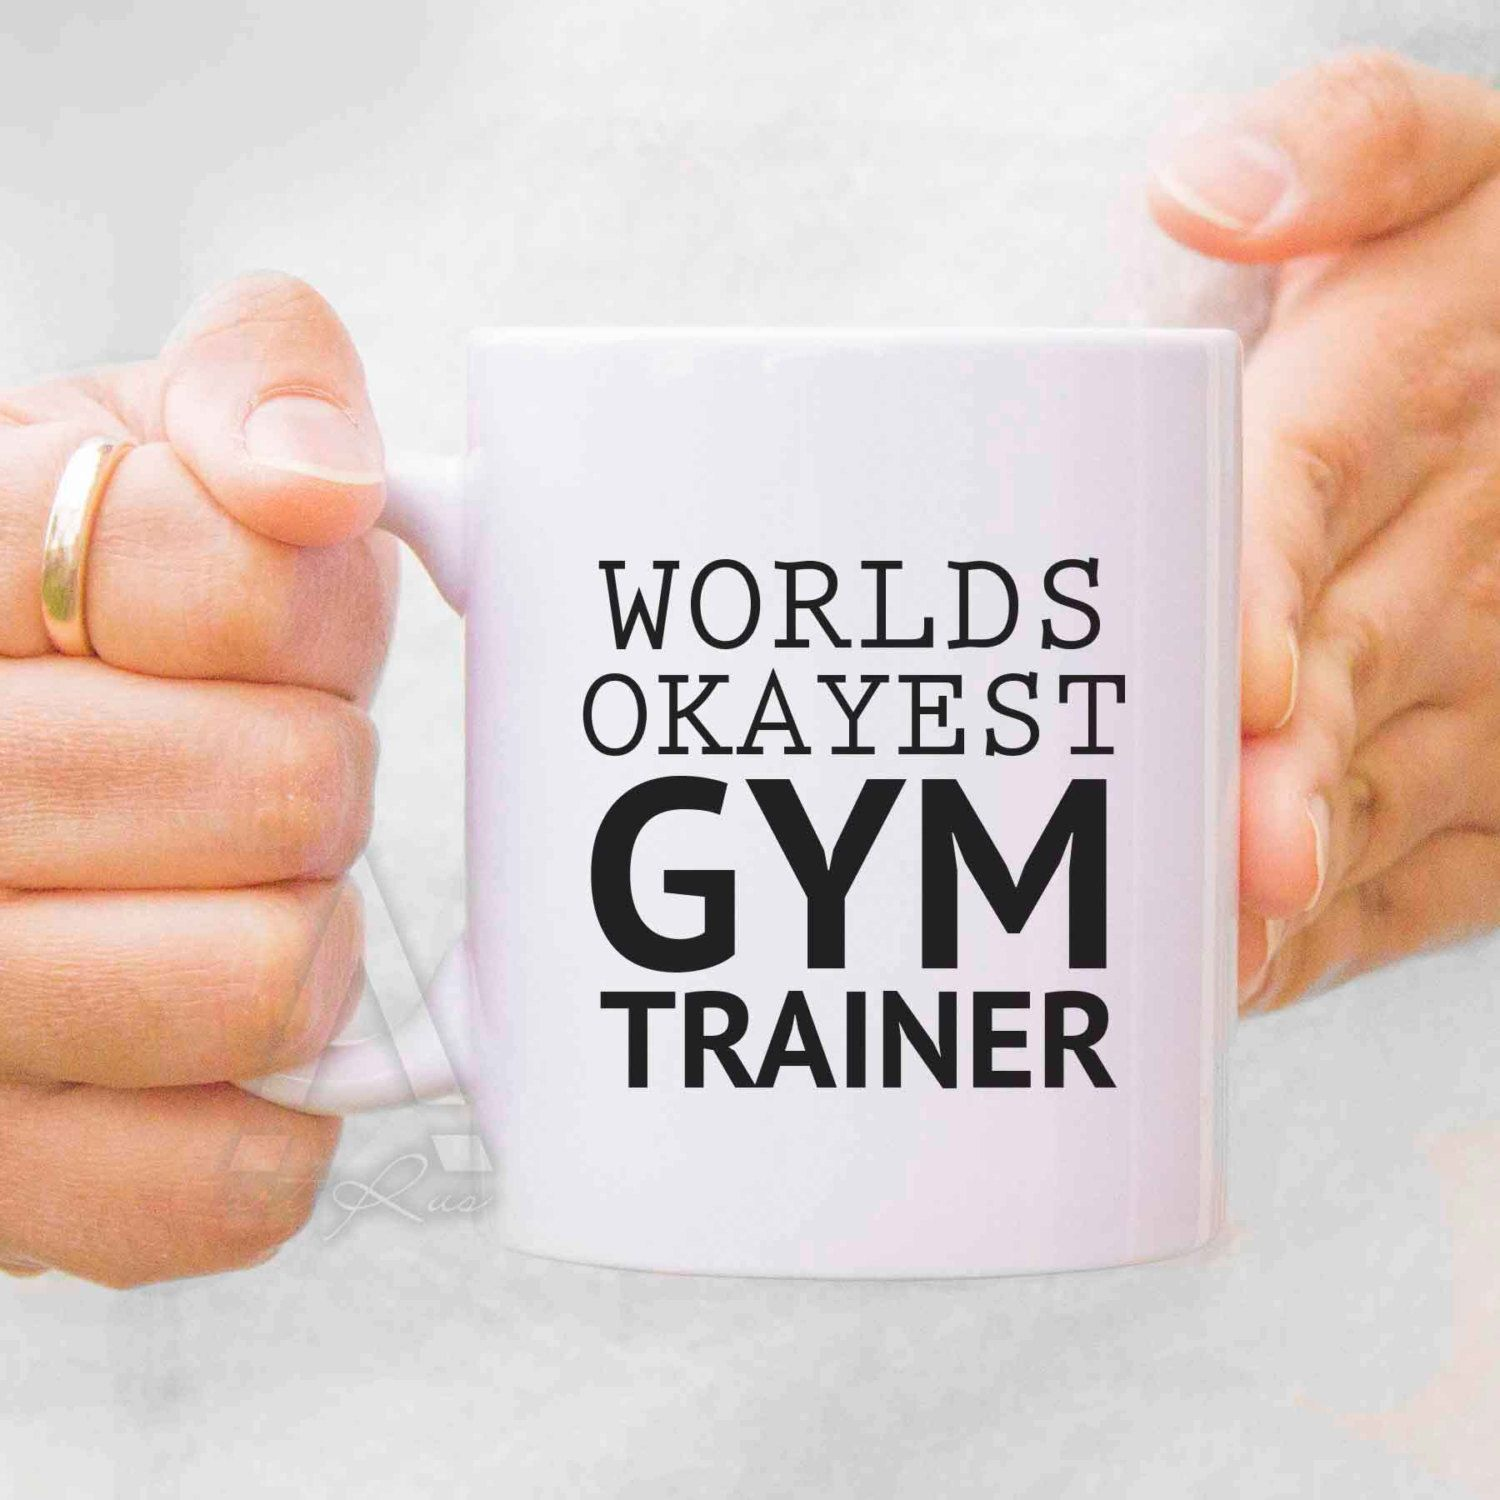 gym teacher gifts fitness gifts mugs for teachers worlds okayest gym trainer coffee mug thank you gift personal trainer gifts mu228 by artruss on